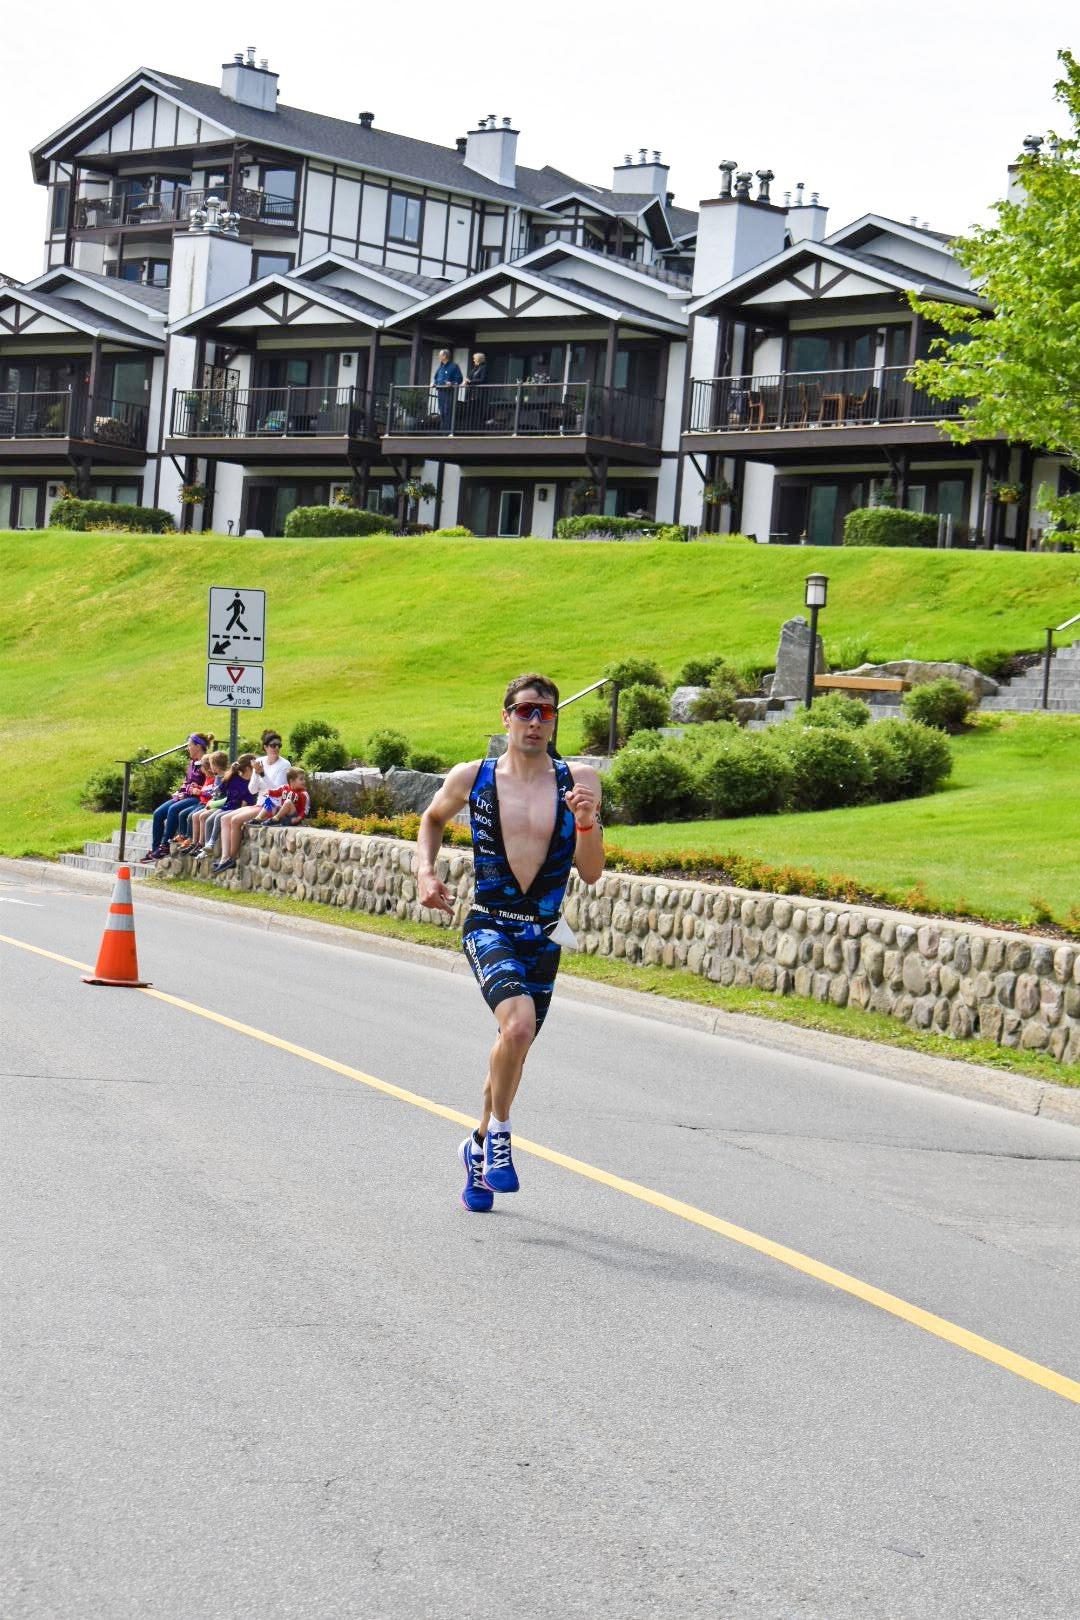 Ironman 70.3 Mont Tremblant 2019, 1:14:31 run.